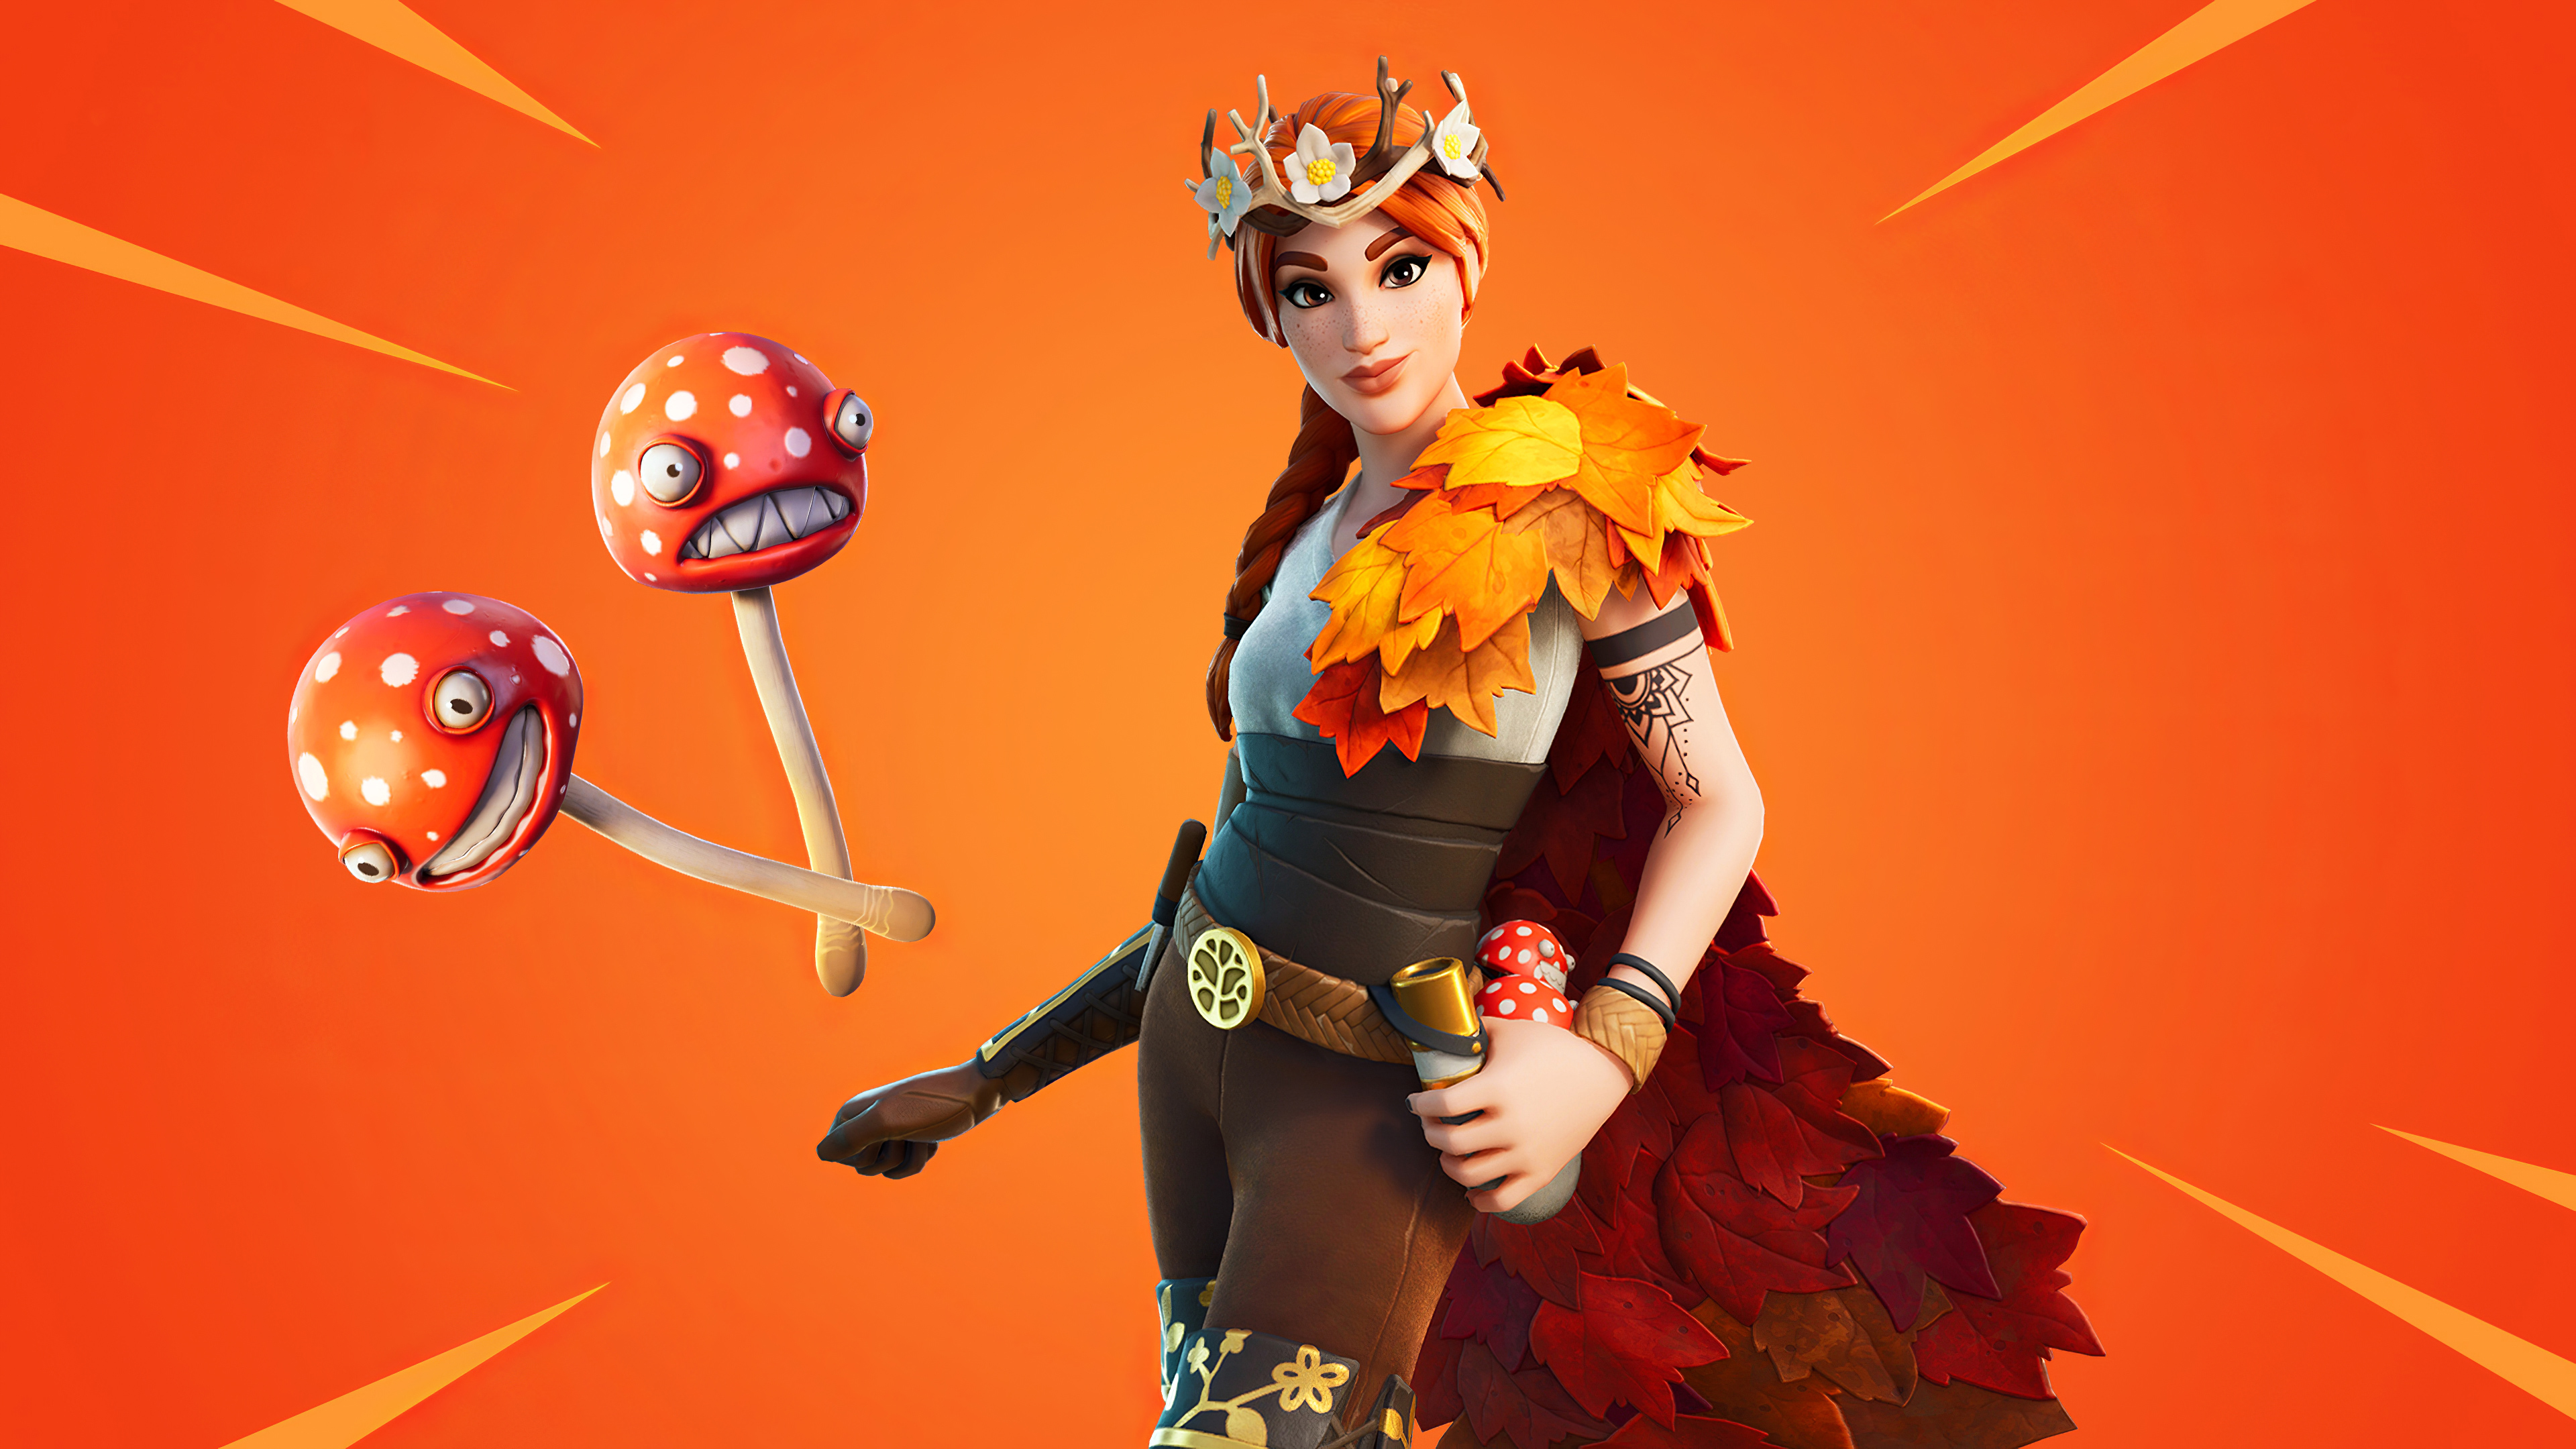 fornite autumn queen outfit 1578854034 - Fornite Autumn Queen Outfit - Fornite Autumn Queen Outfit 4k wallpaper, Autumn Queen Outfit 4k wallpaper